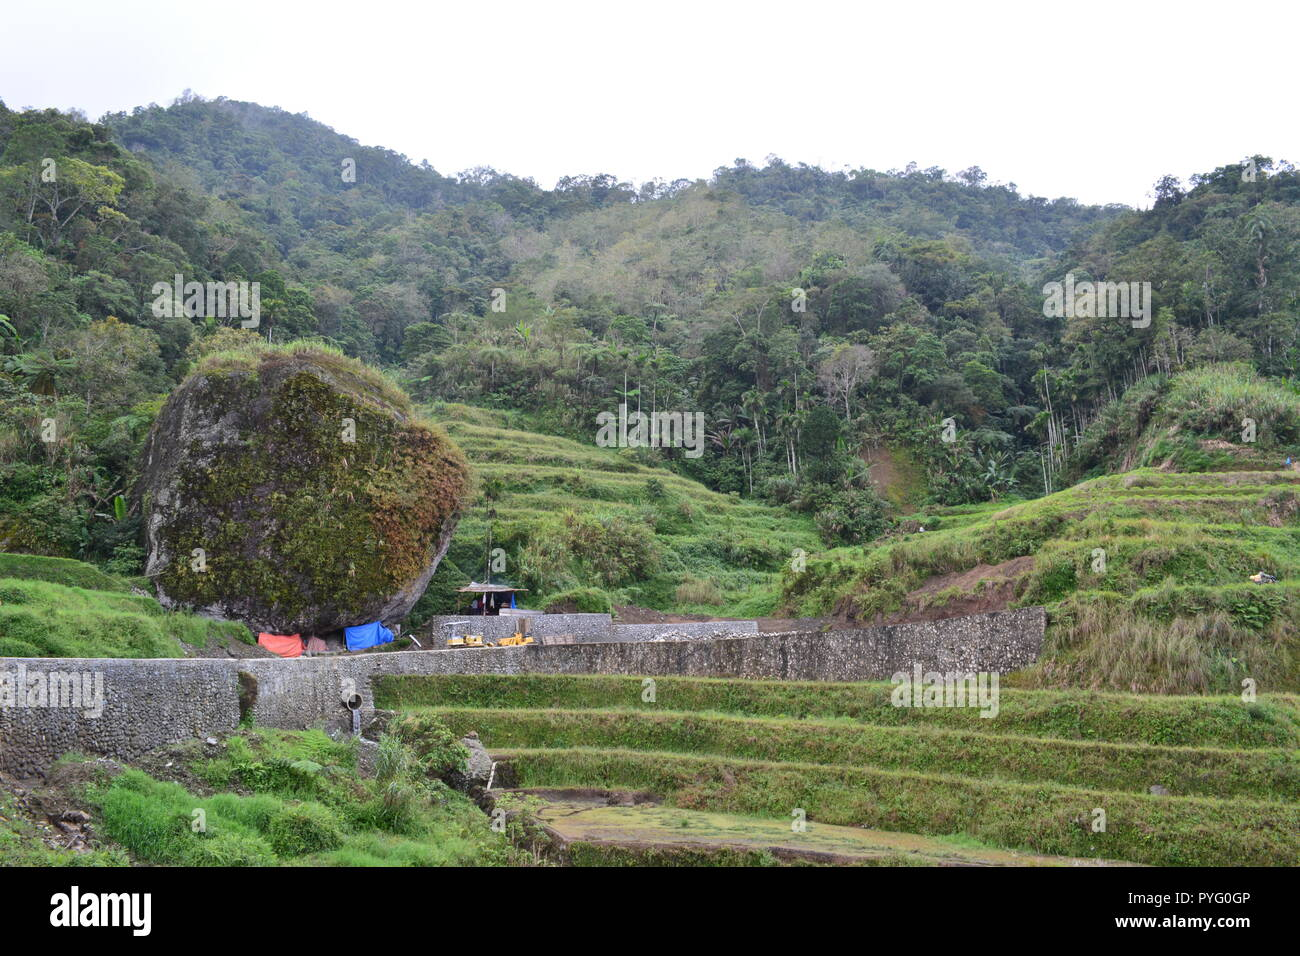 Banaue Rice Terraces Ifugao Philippines - Stock Image